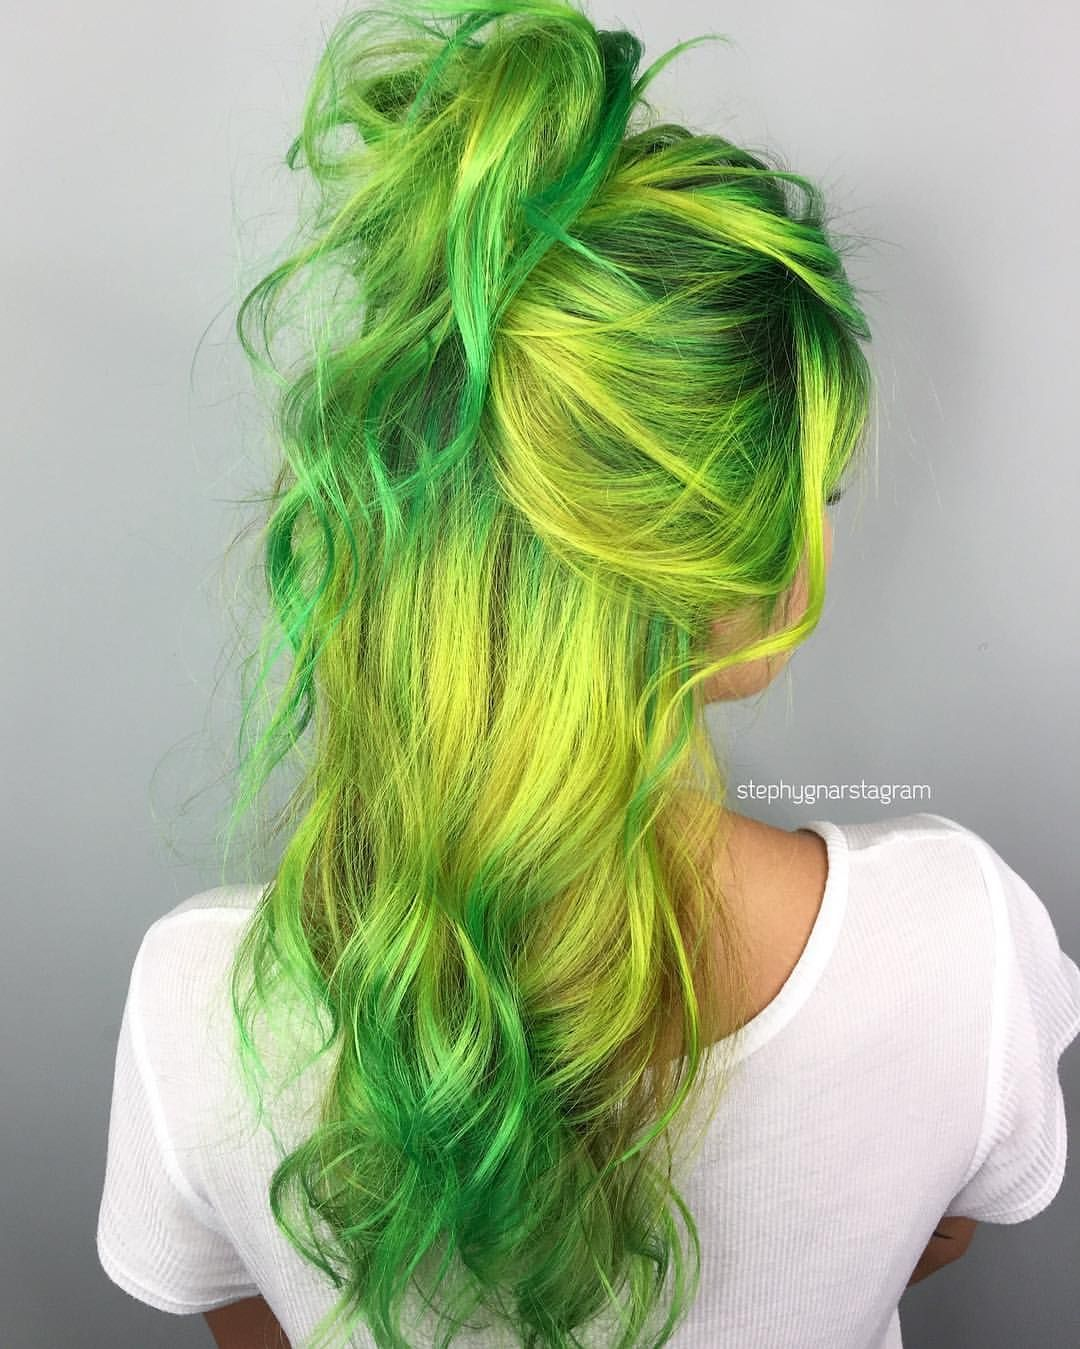 Green and yellow hair exclusive photo